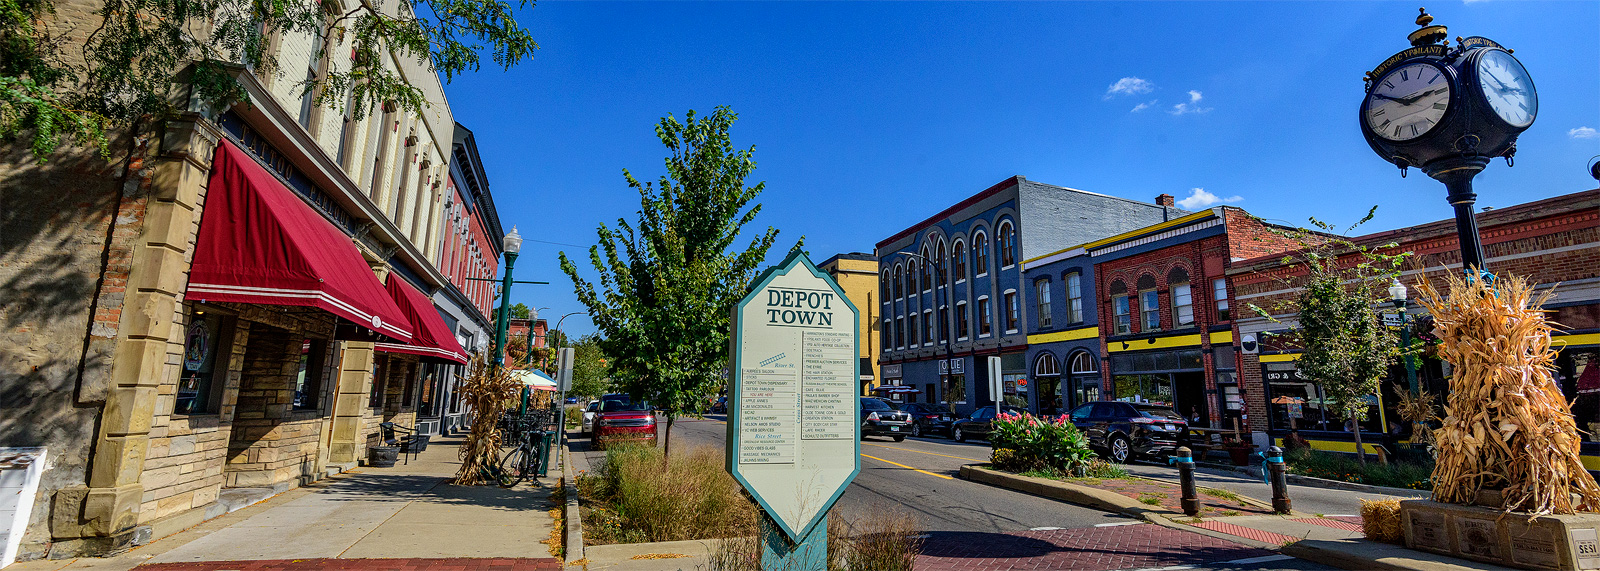 Depot Town in Ypsilanti <span class='image-credits'>Doug Coombe</span>